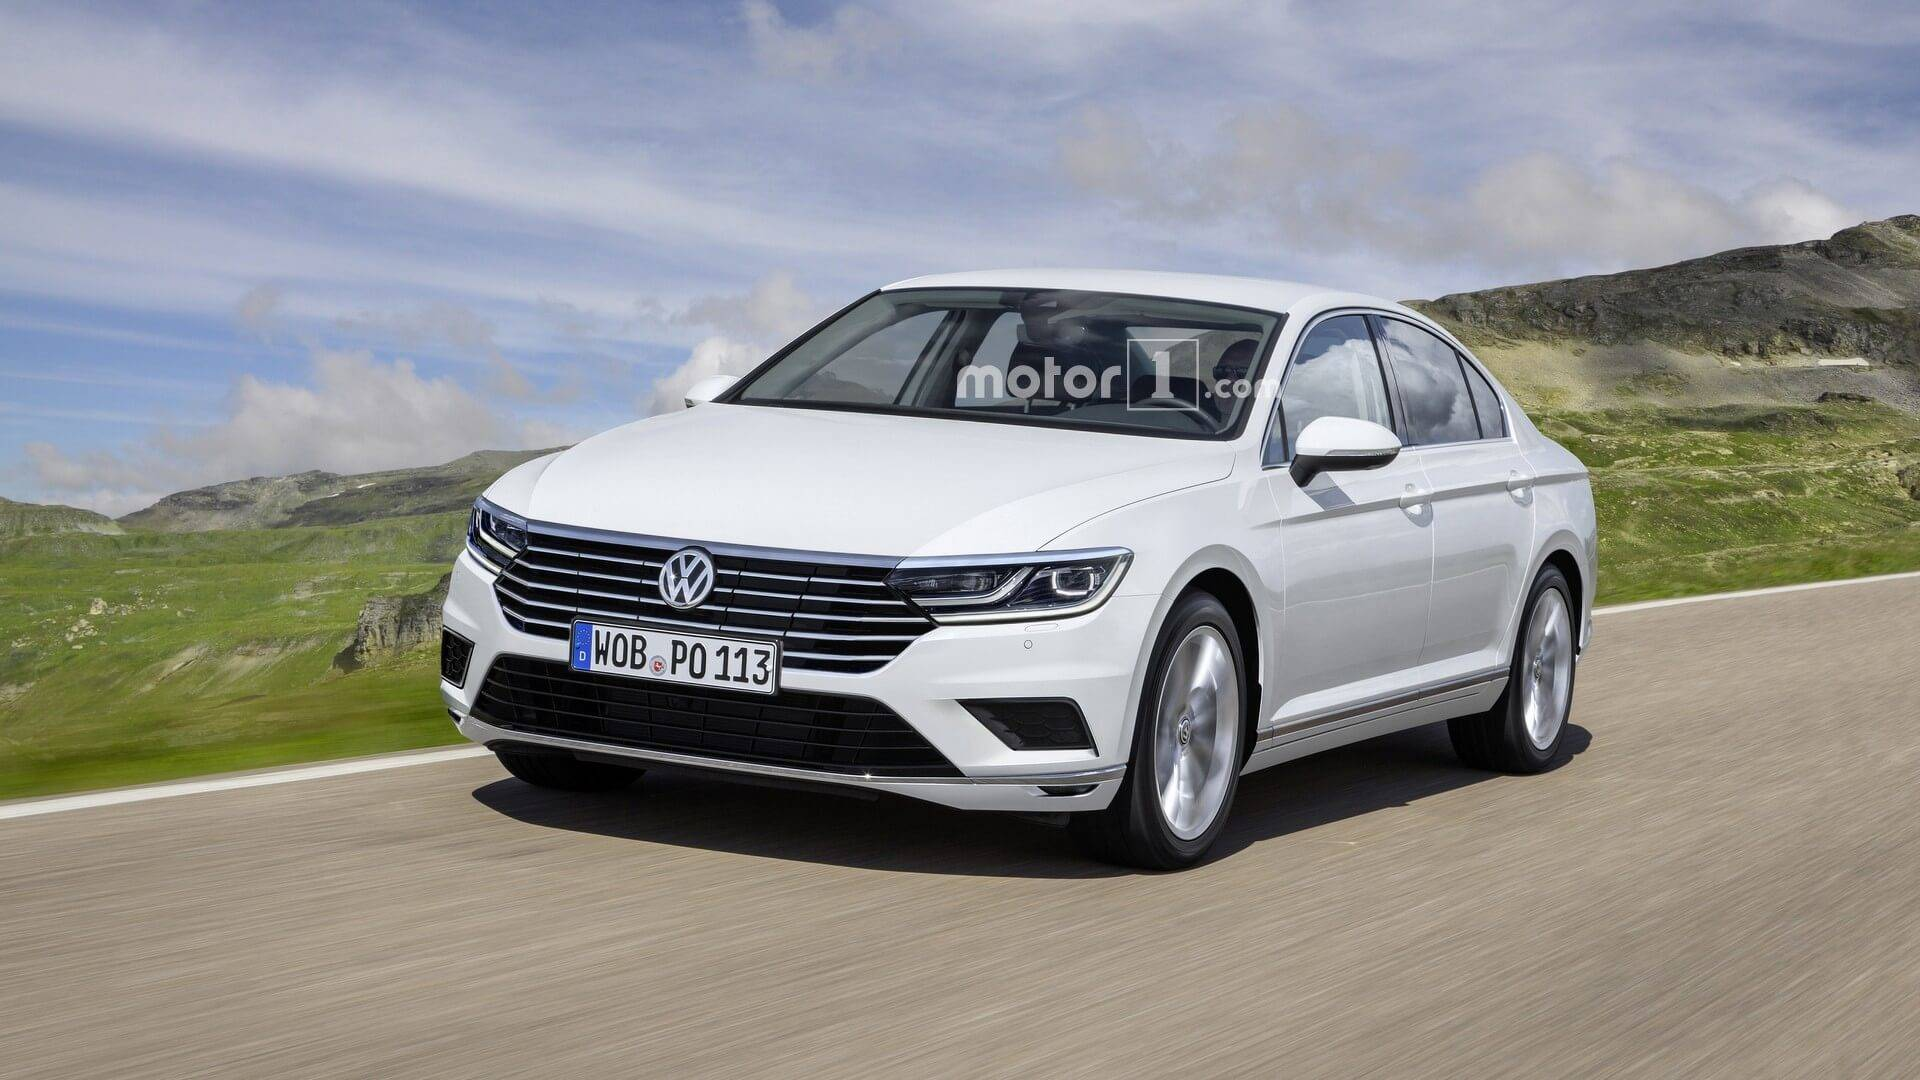 23 Concept of 2019 Vw Cc Configurations with 2019 Vw Cc